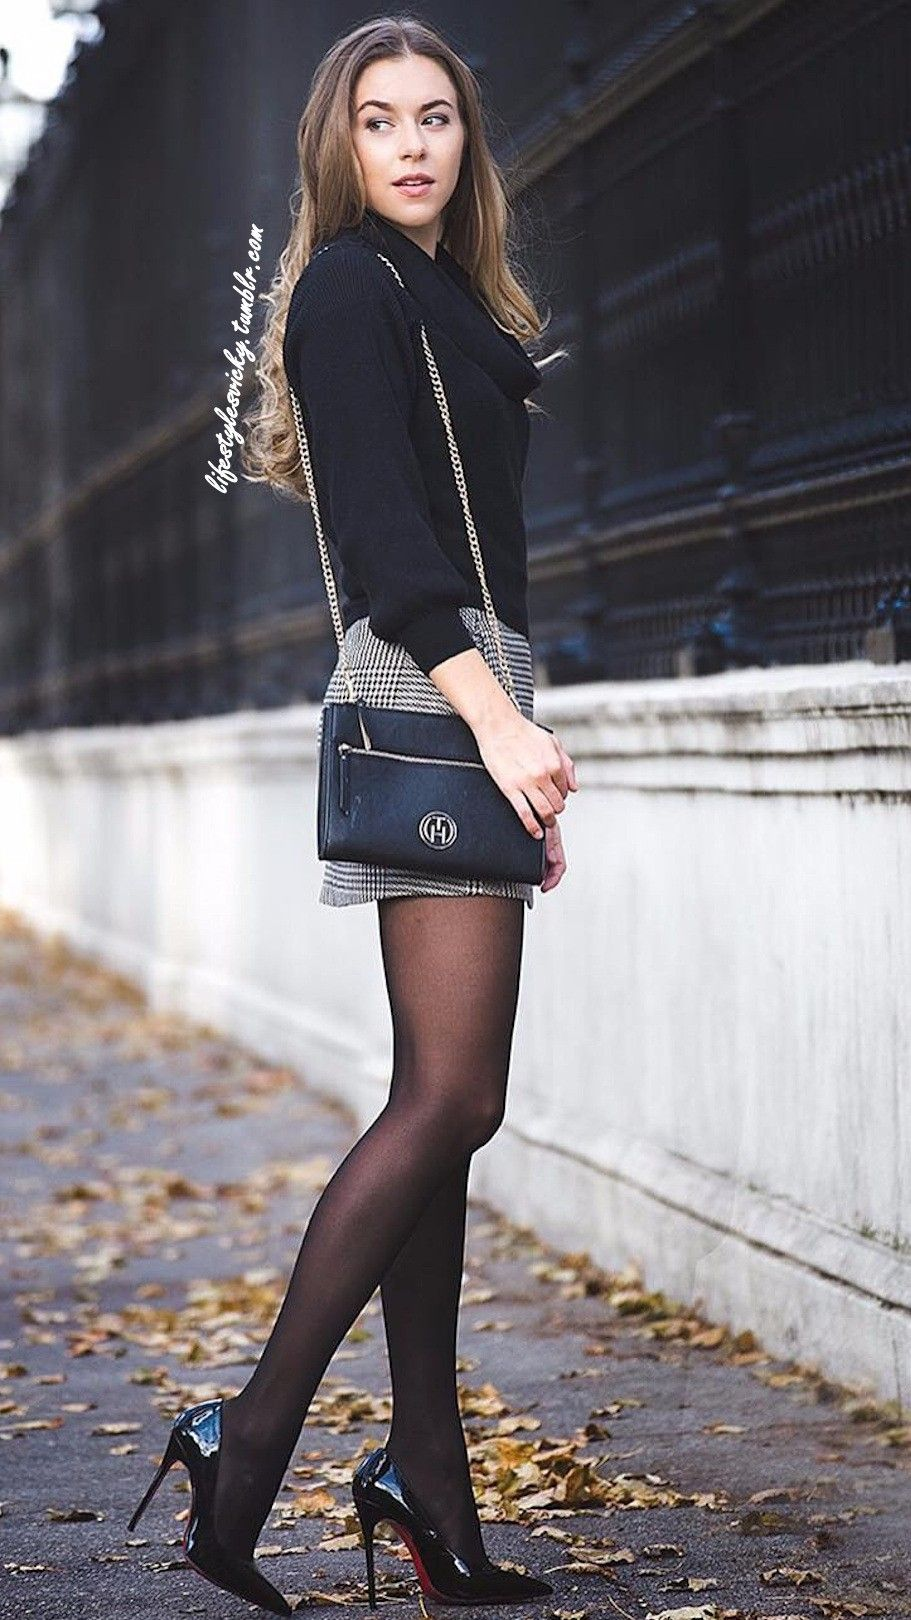 Pin by silver on sexy heels pinterest hot outfits black tights